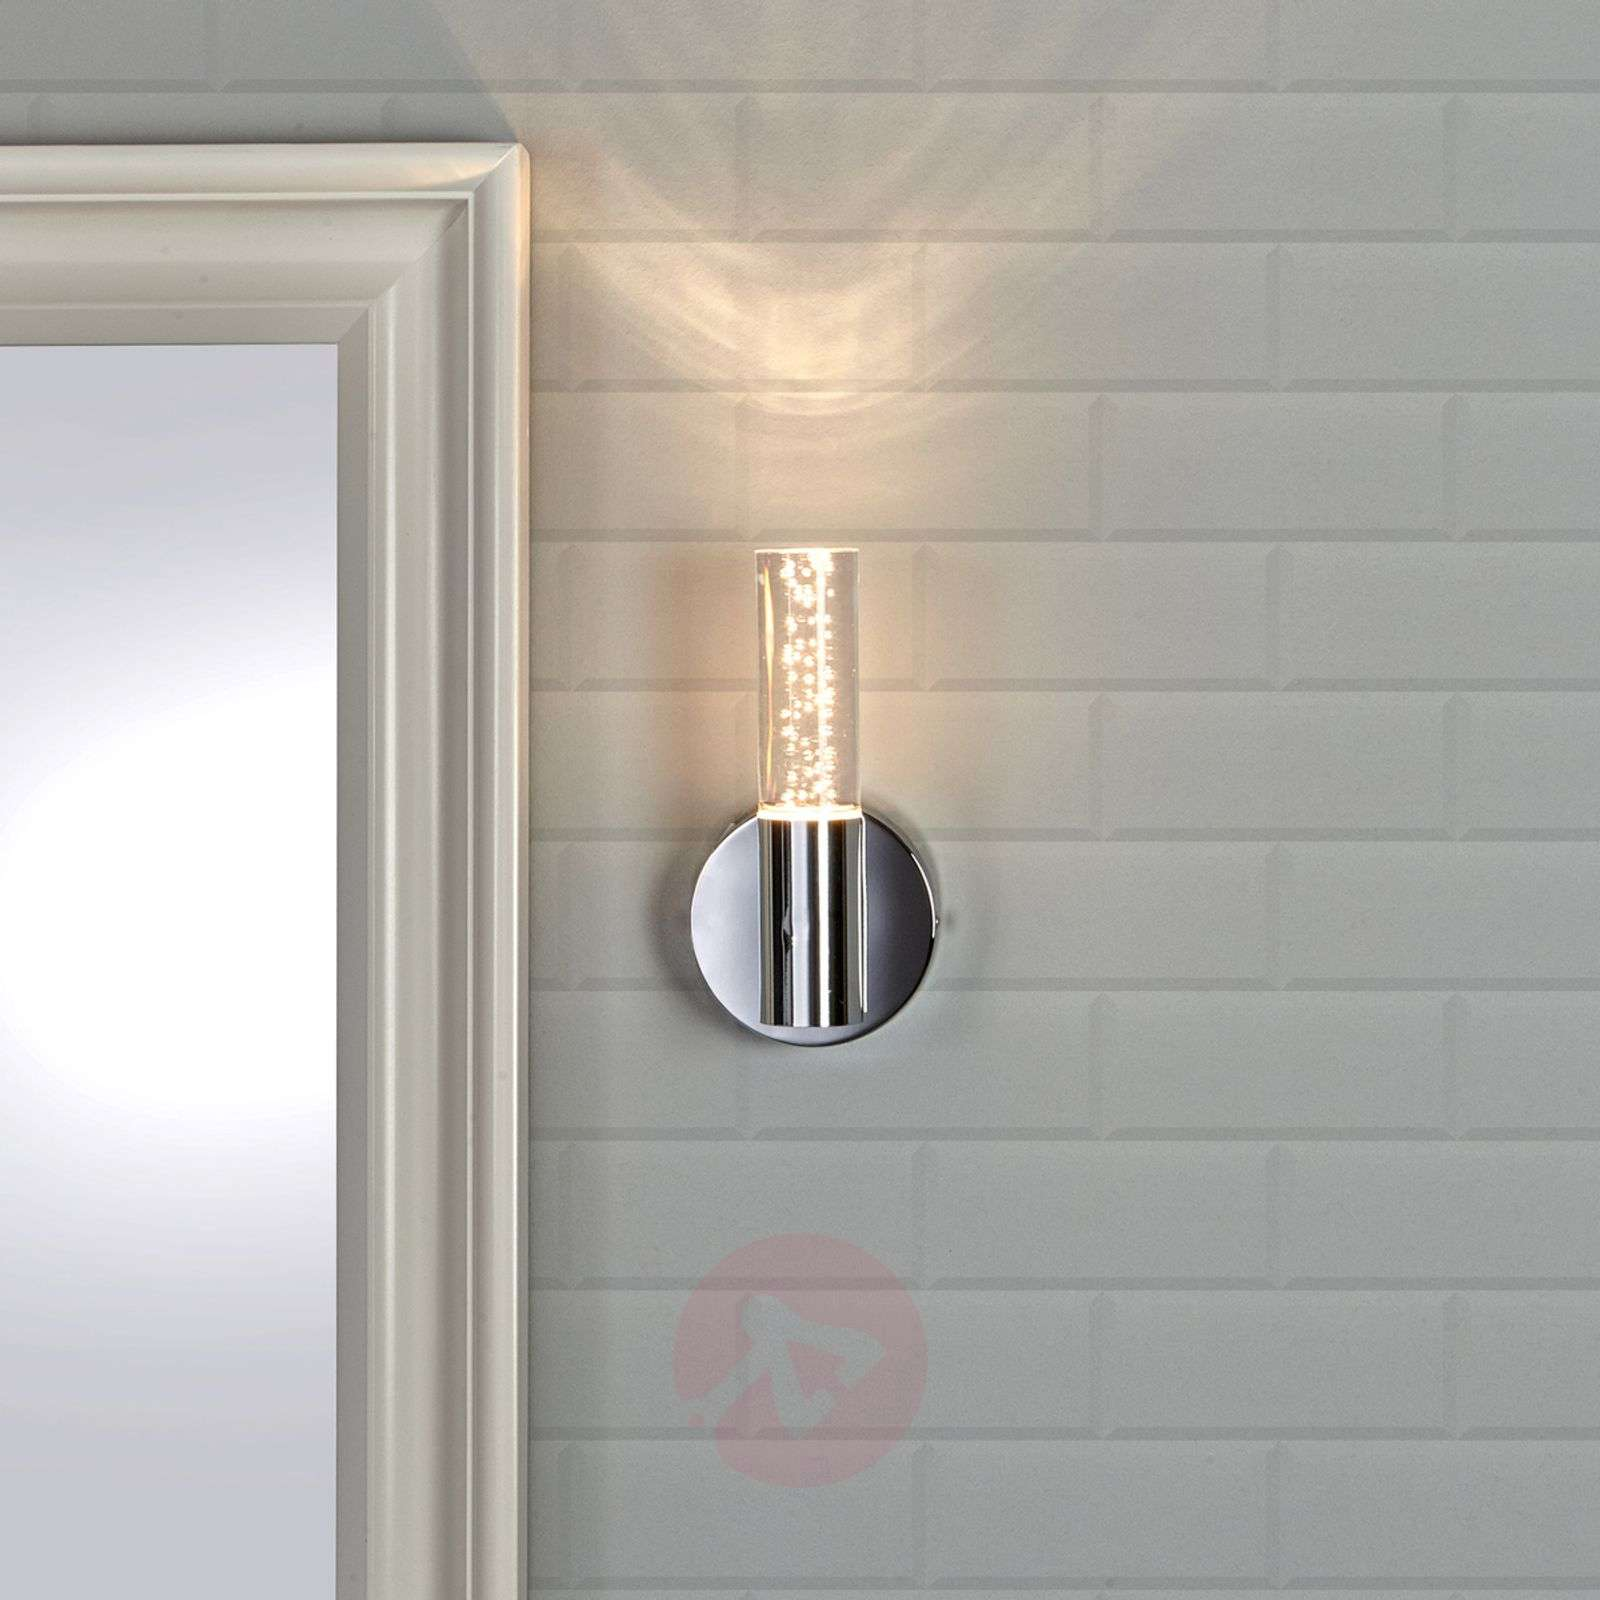 Led Bathroom Wall Lights Uk: Duncan Decorative Bathroom Wall Light With LED